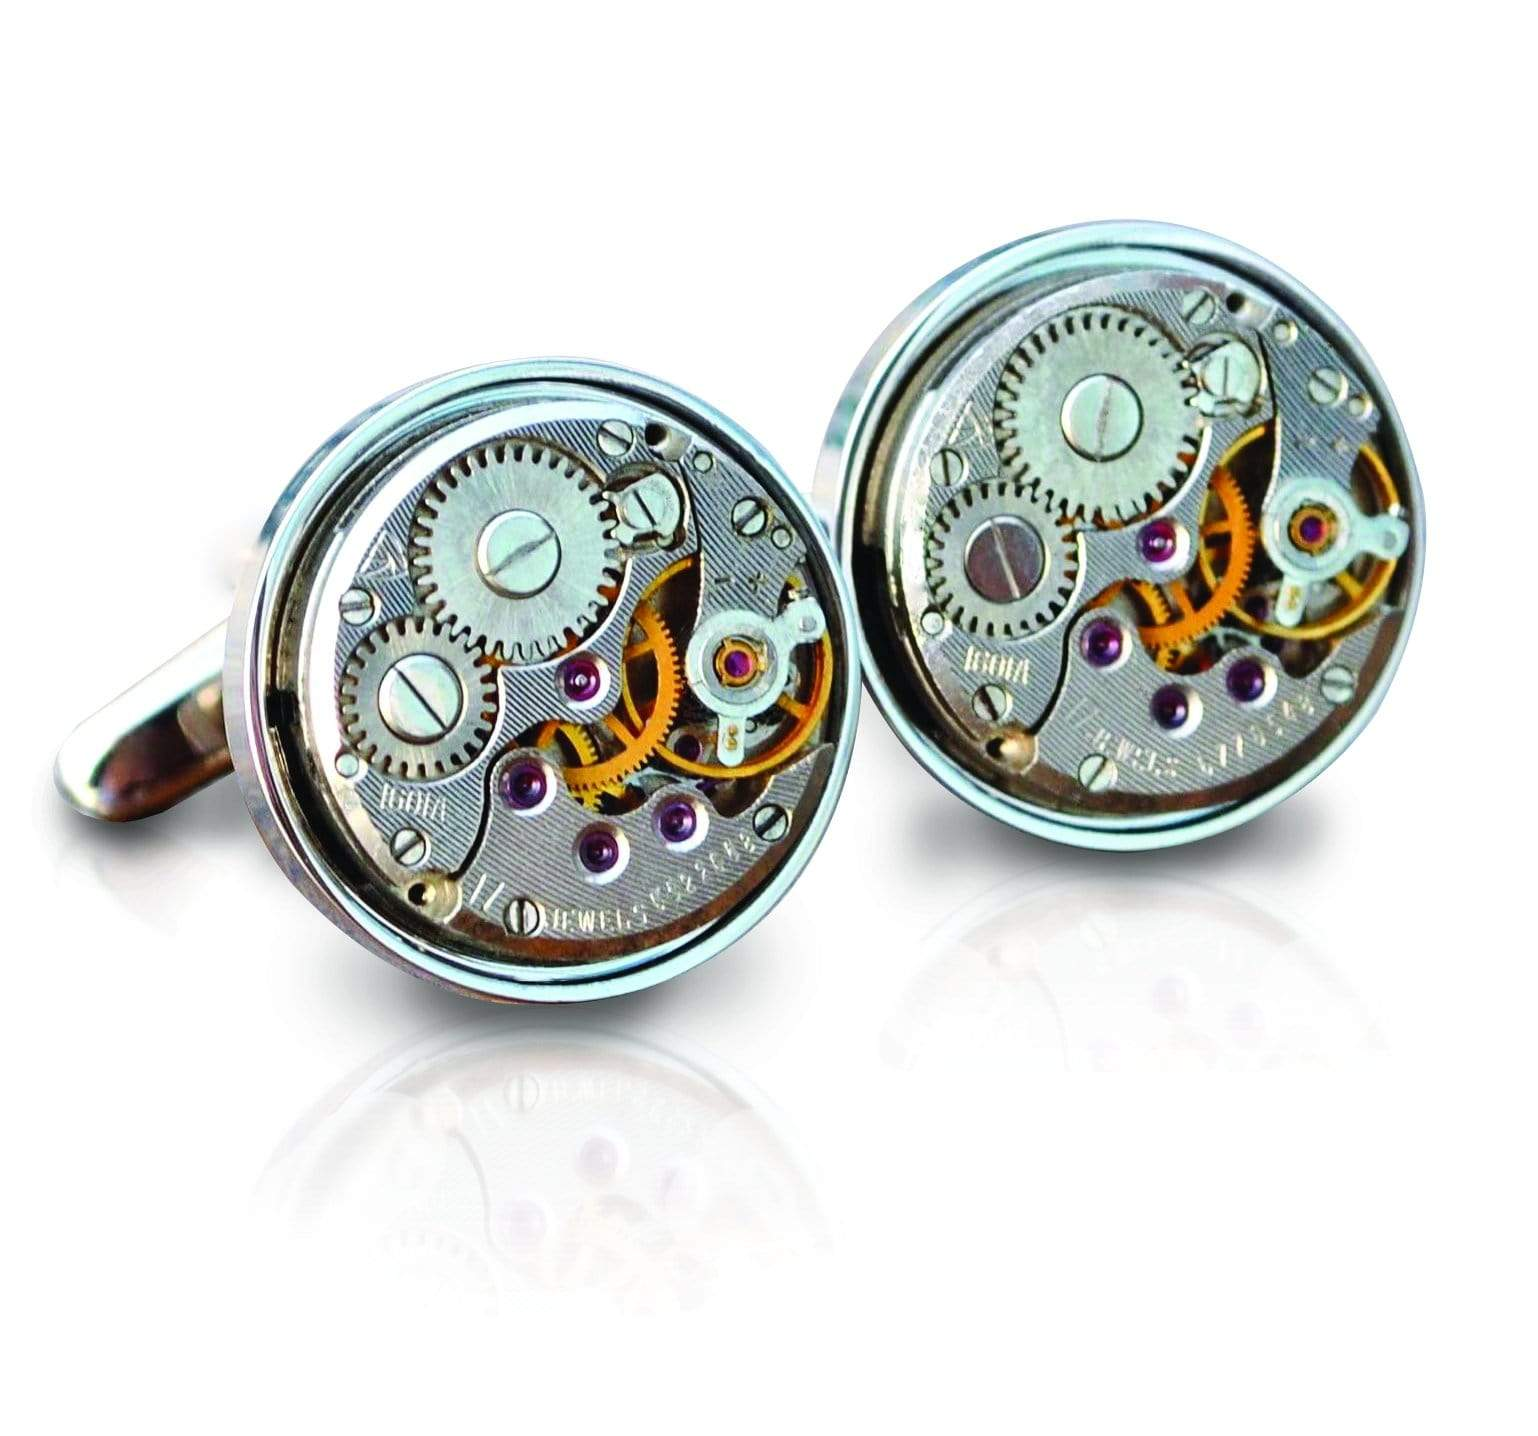 Men's Cufflinks | Lingo Luxe The Smith-Lingo Luxe Bespoke